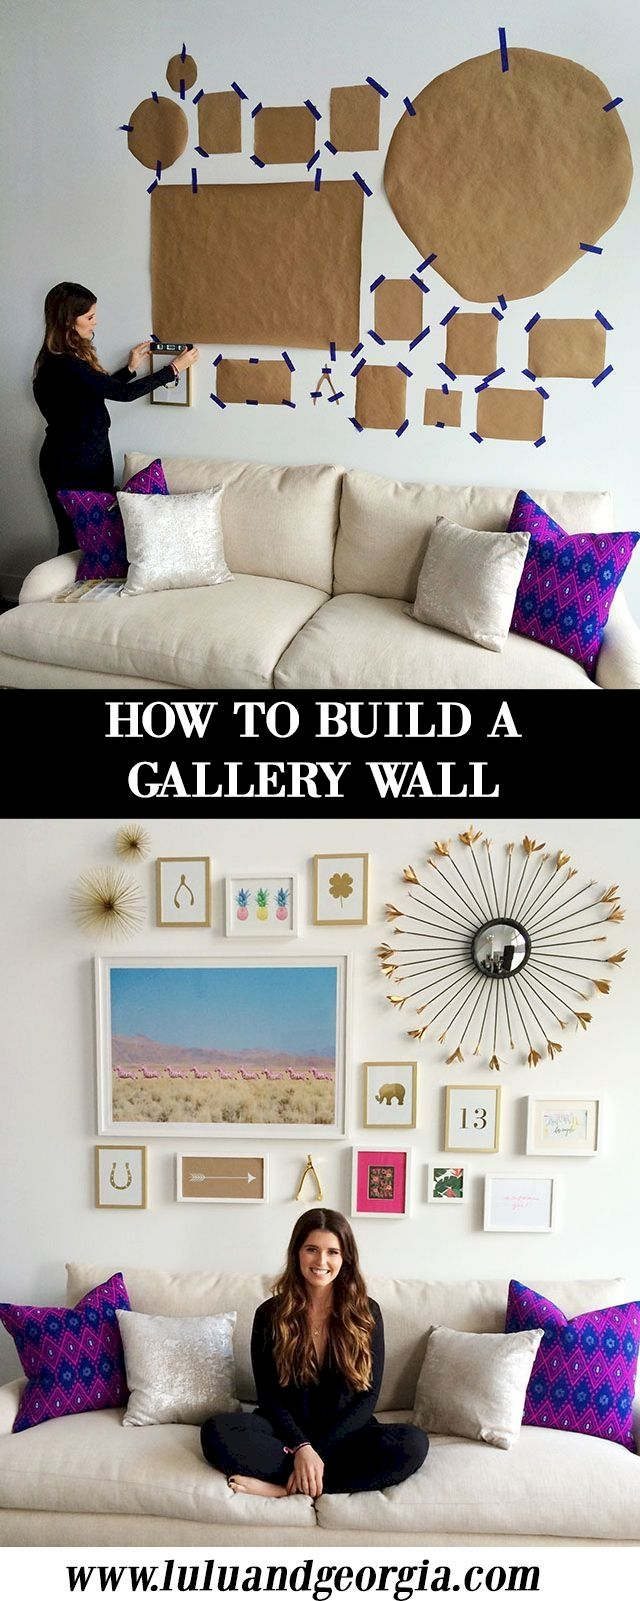 15. Get that gorgeous gallery wall